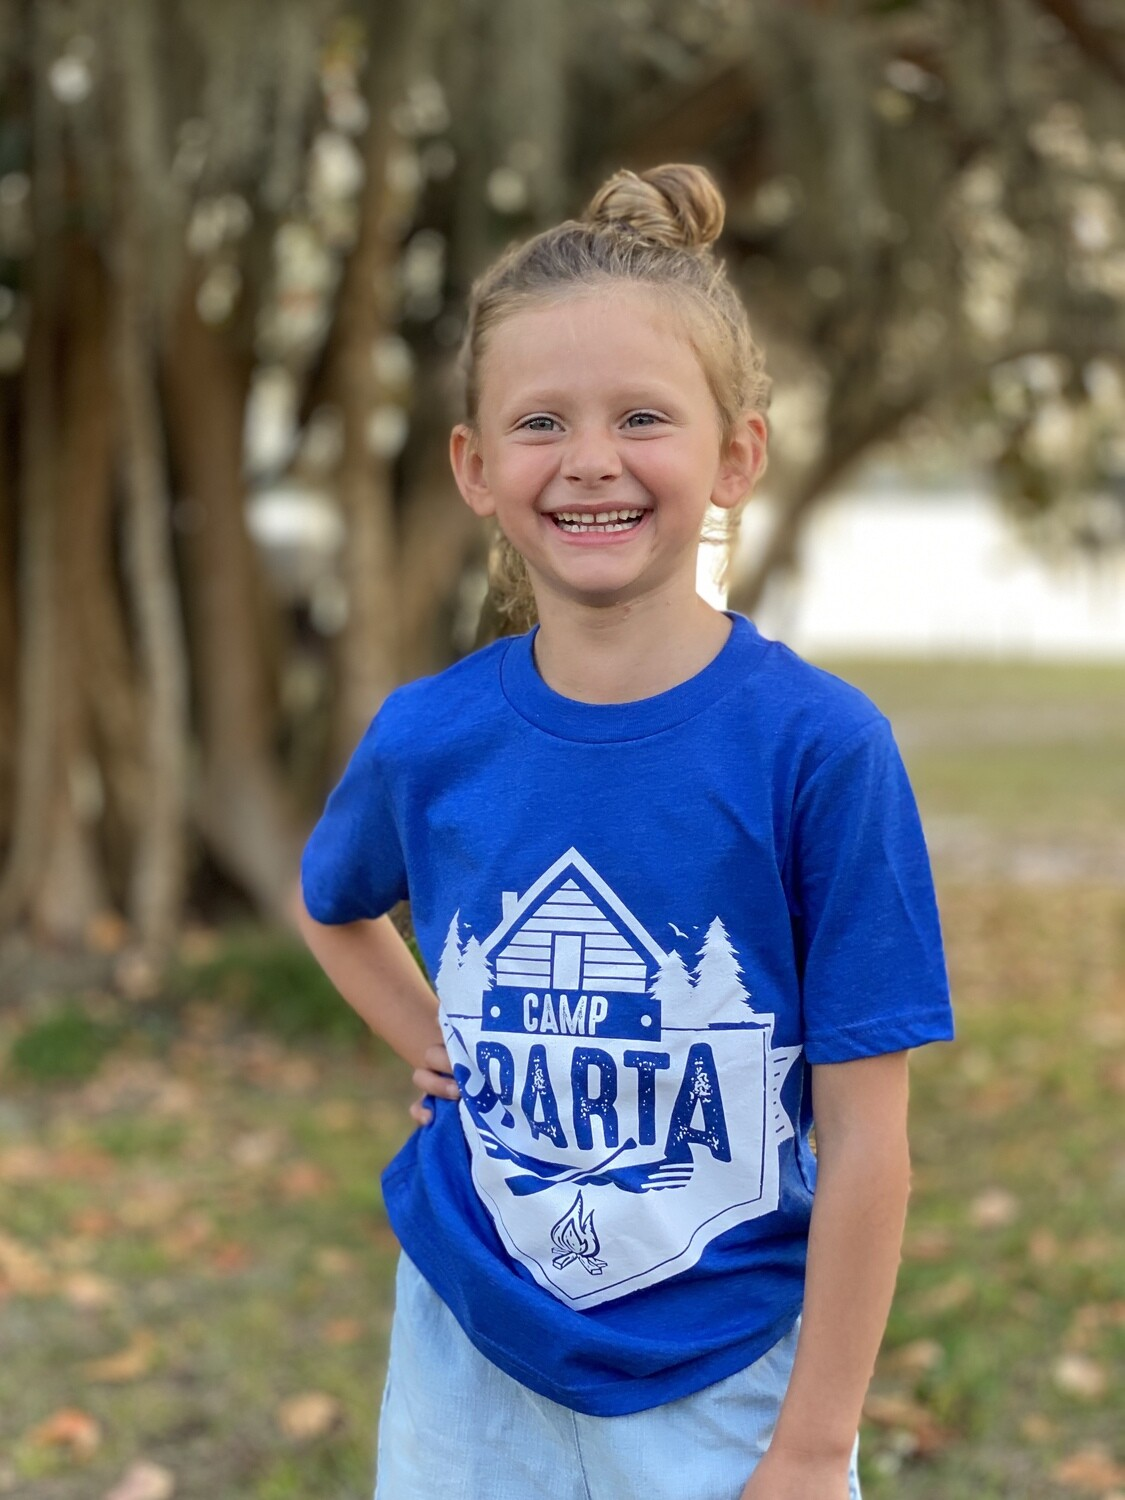 Youth Camp Sparta Tee